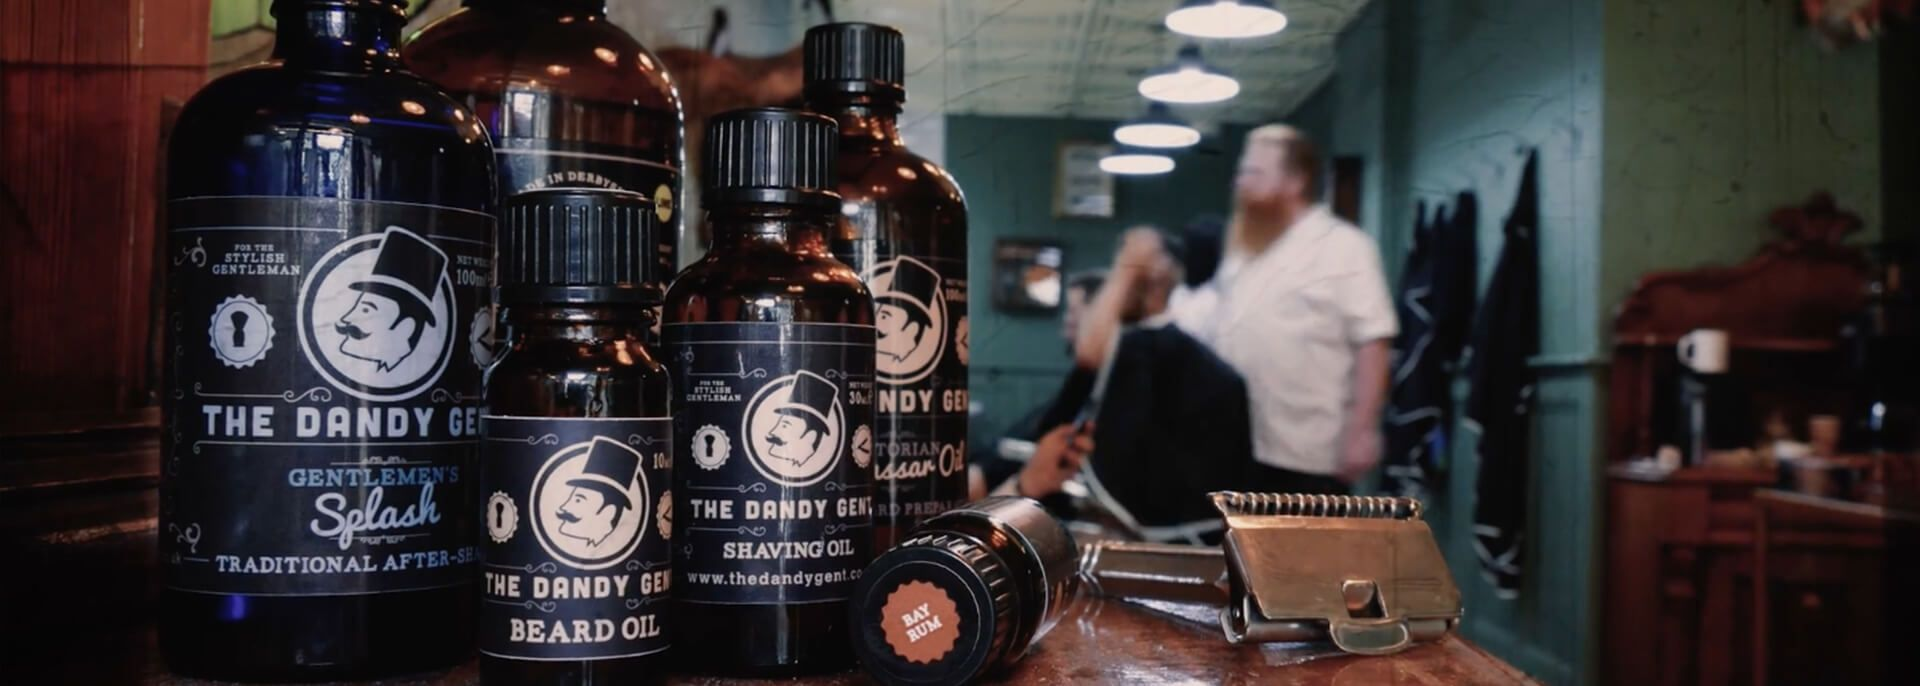 The Dandy Gent Beard Oil, Splash, Shave Oil displayed with Master Barber, Shane O''Shaughnessy in the background cutting hair in his Derby, UK-based Traditional Barber shop.